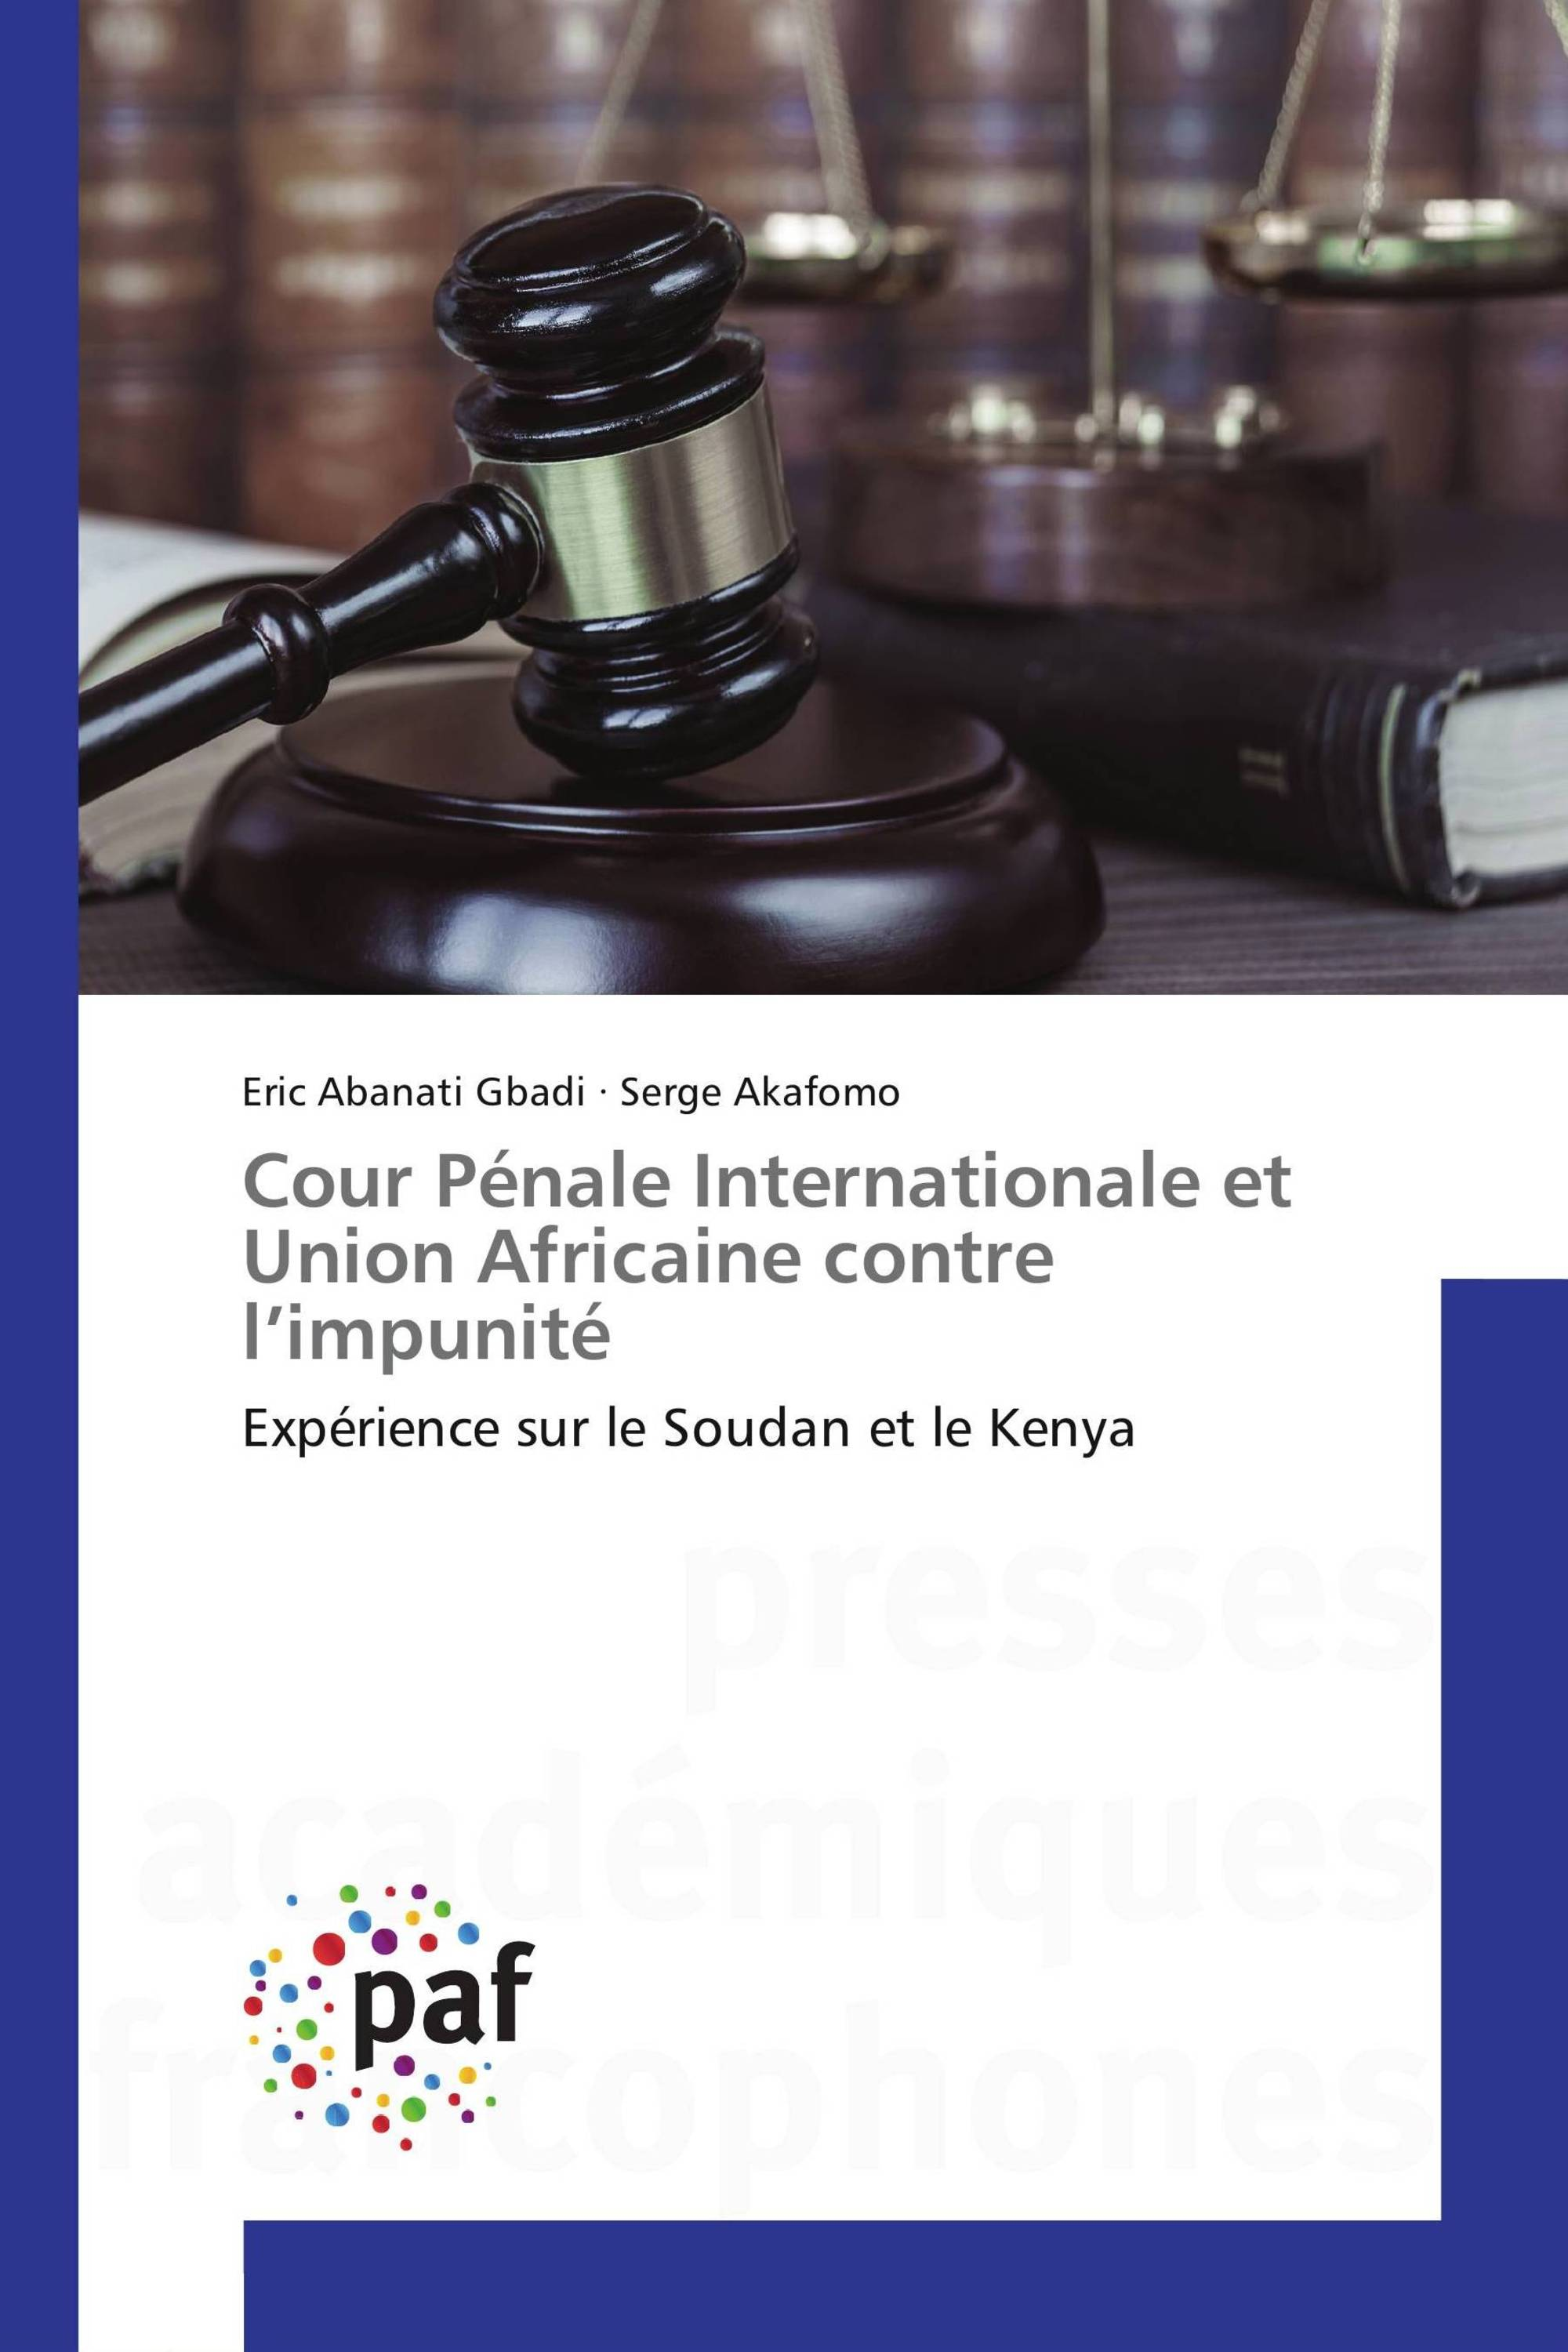 Cour Pénale Internationale et Union Africaine contre l'impunité